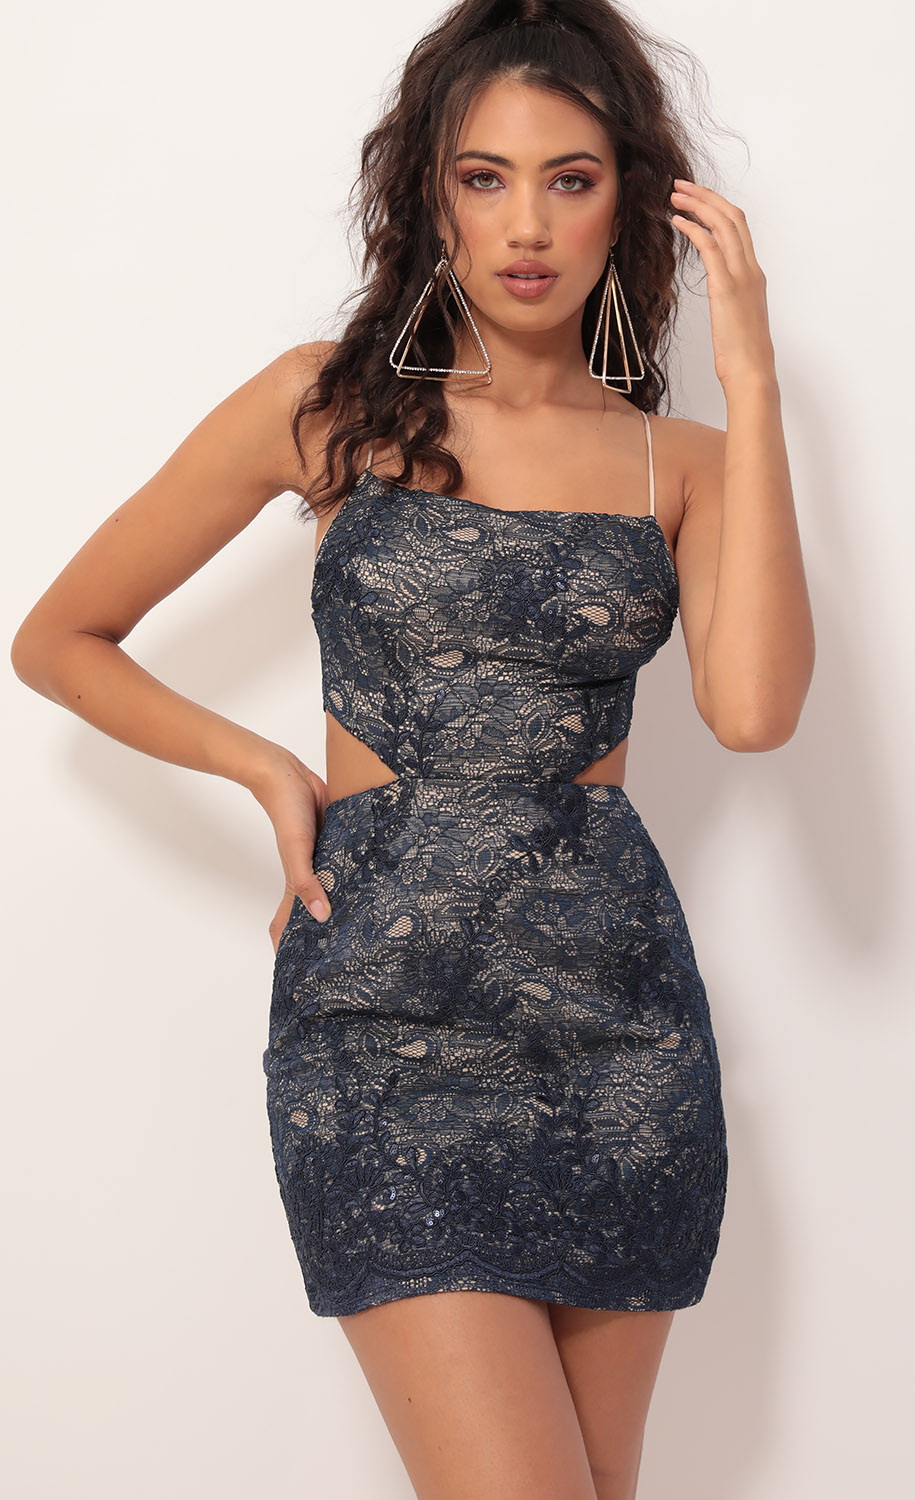 Lana Lace Cutout Dress in Navy Nude